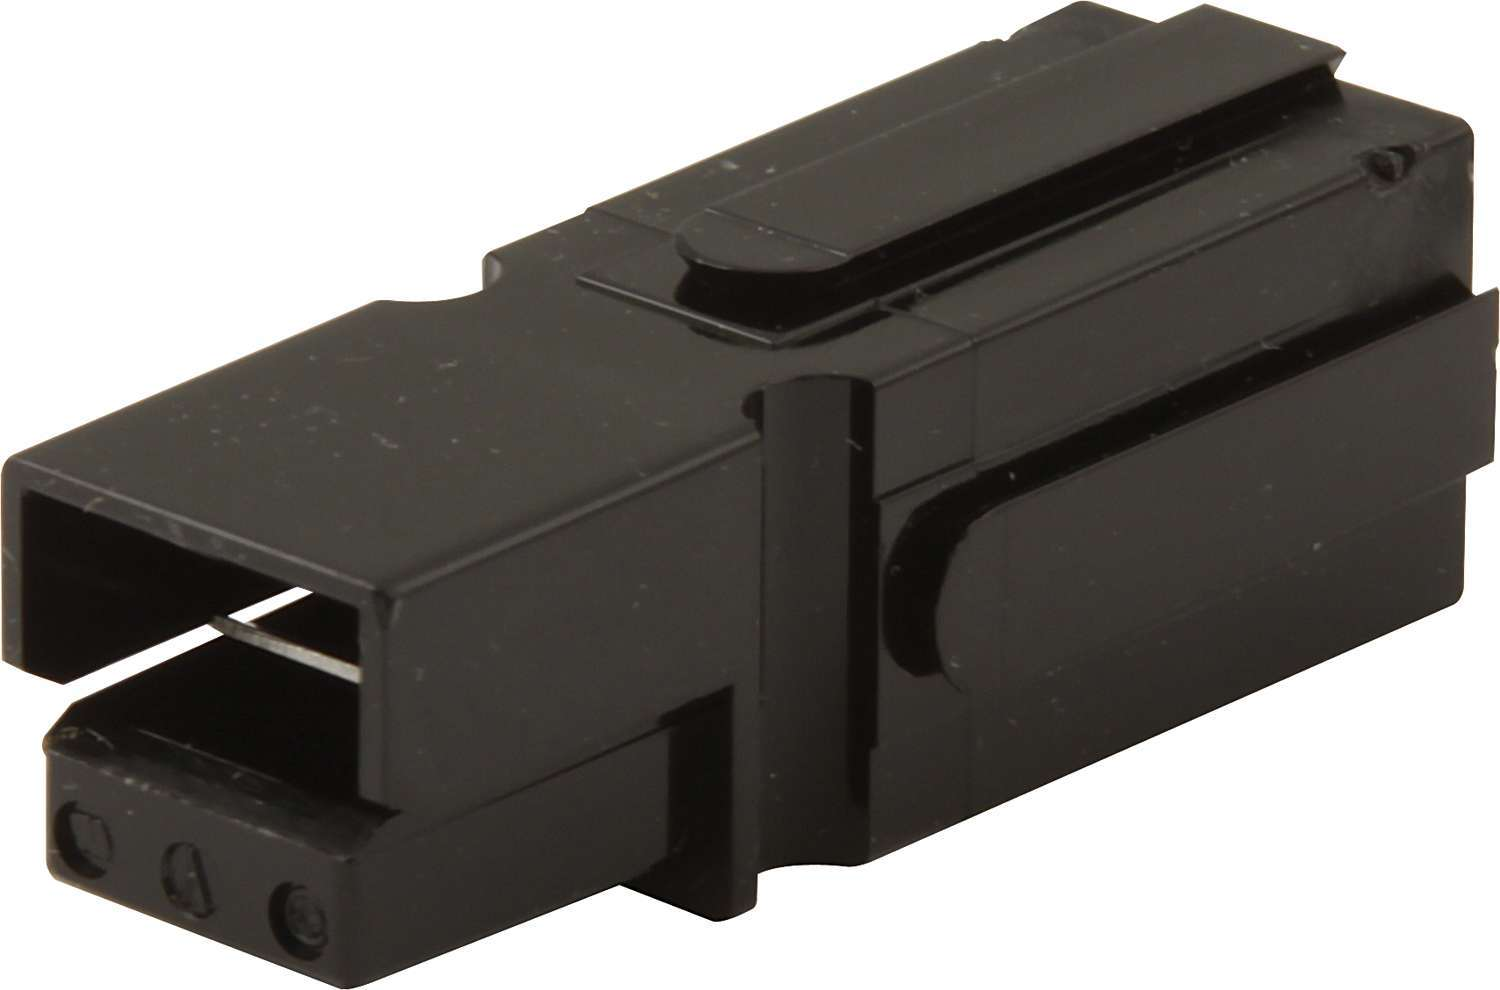 QuickCar 50-513 Battery Cable Connector, Holster, 6 Gauge Cable, Black, Quickcar Battery Quick Disconnect, Each